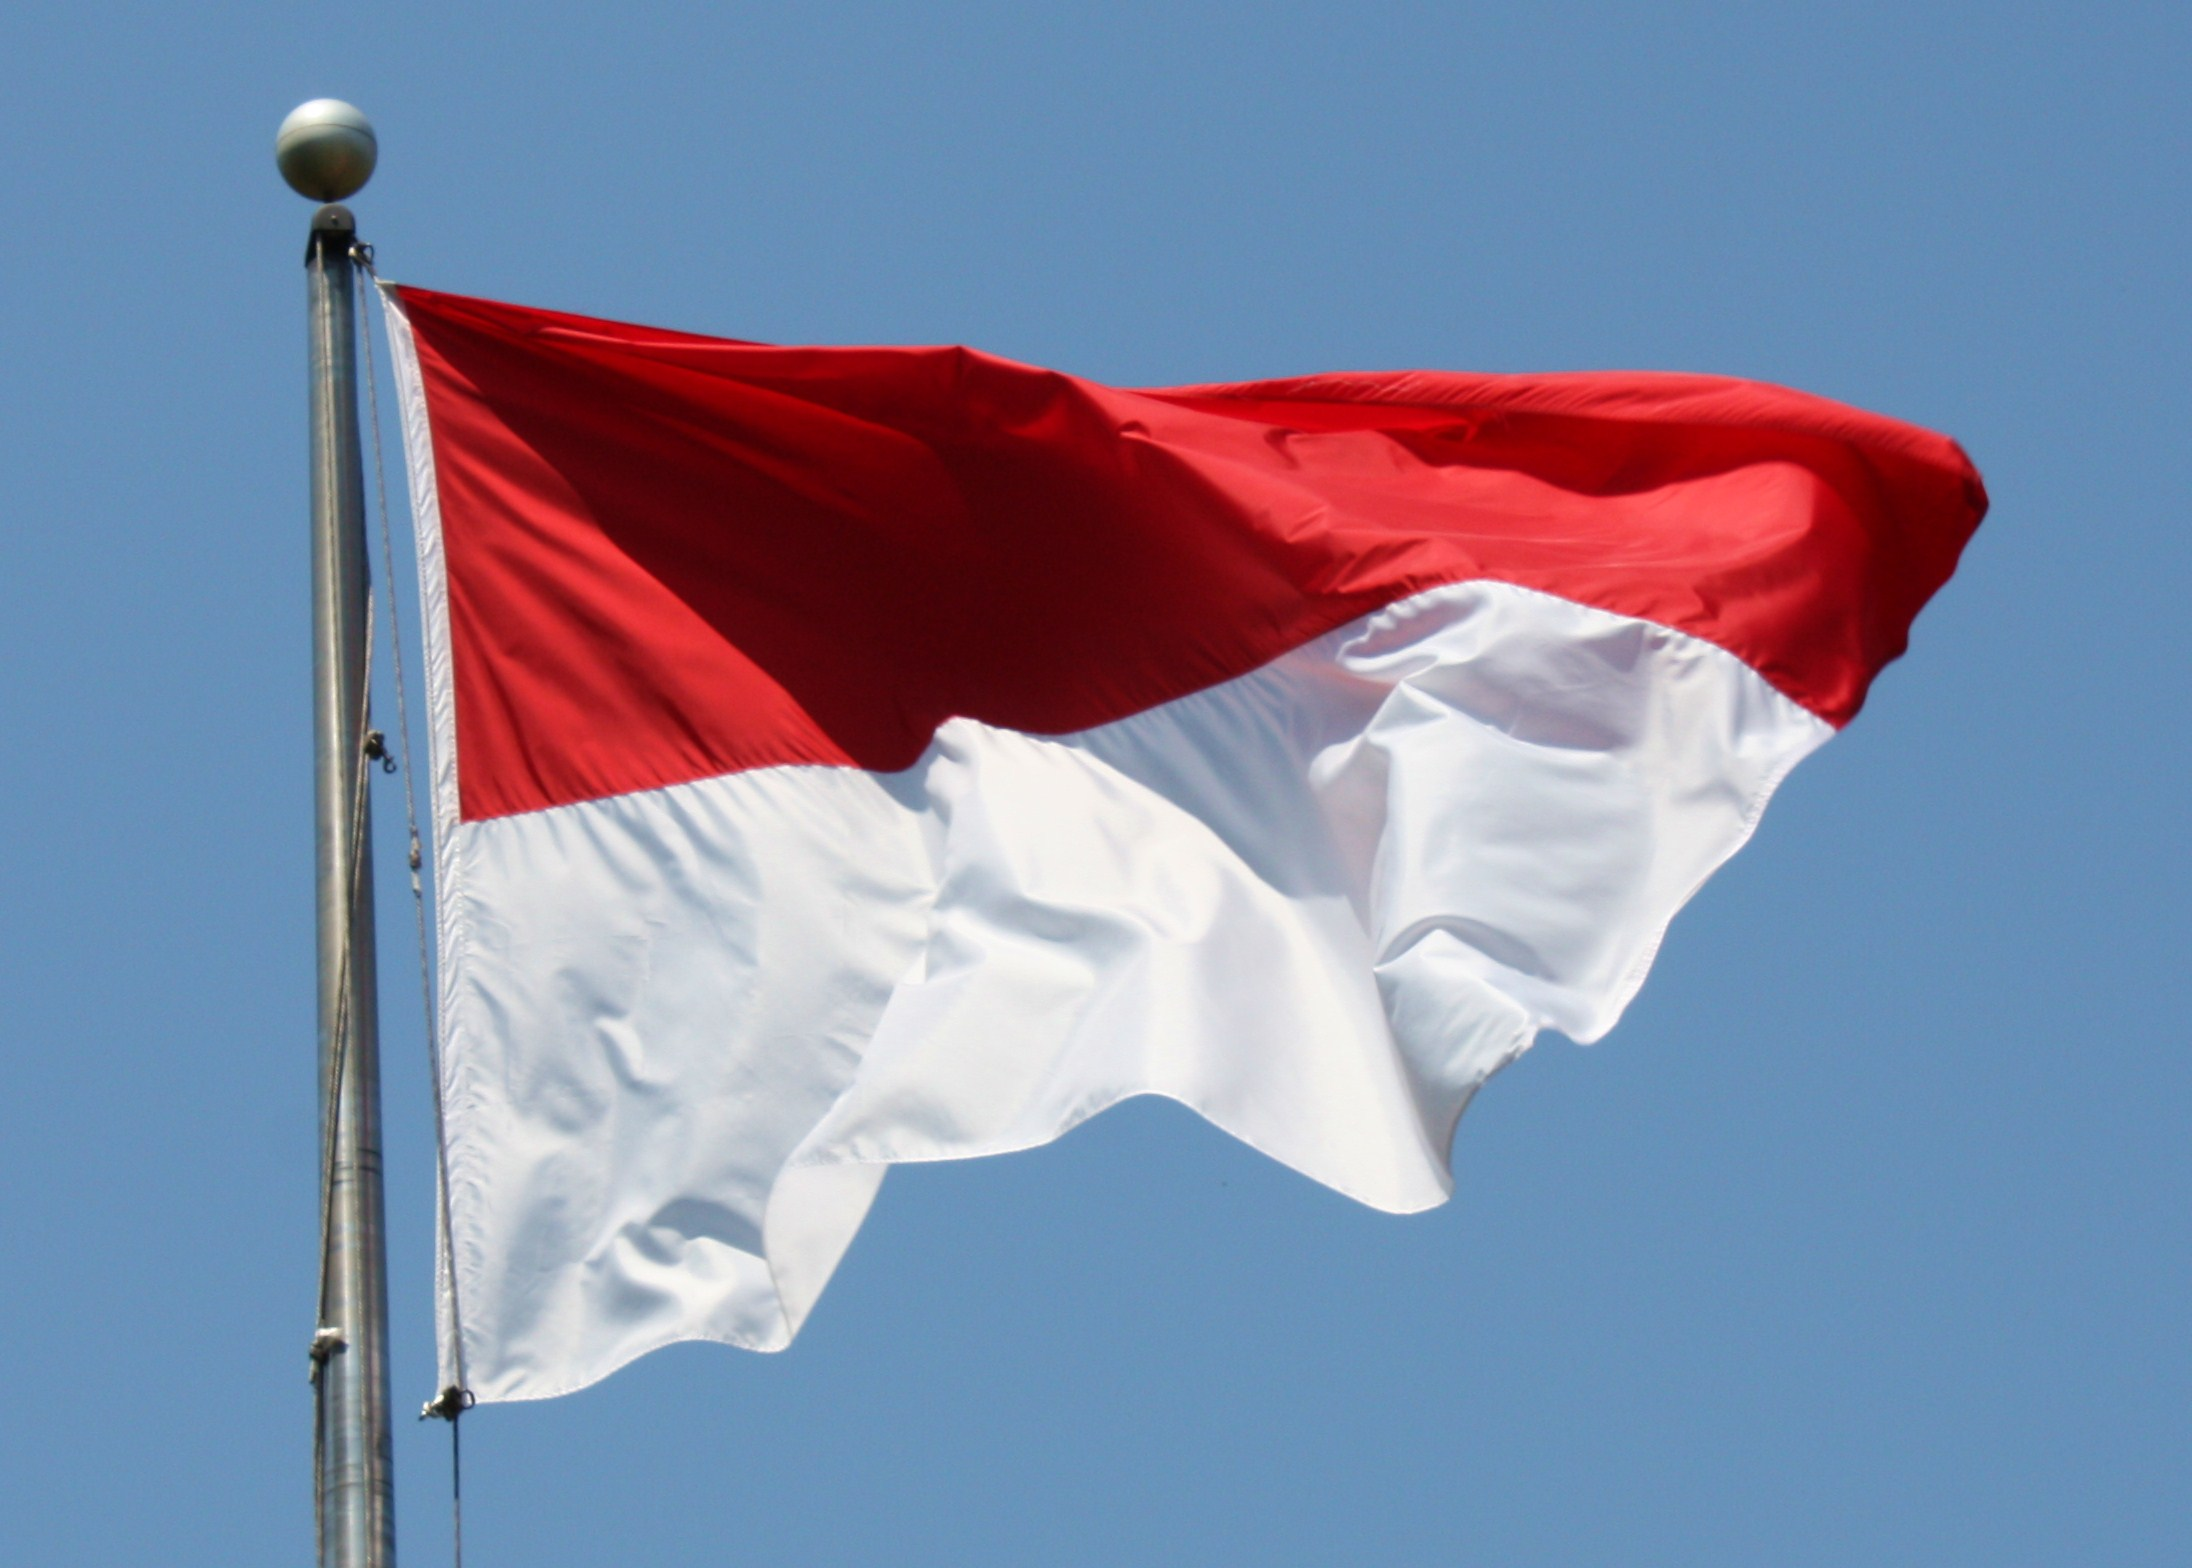 Indonesia's elections point to religious intolerance